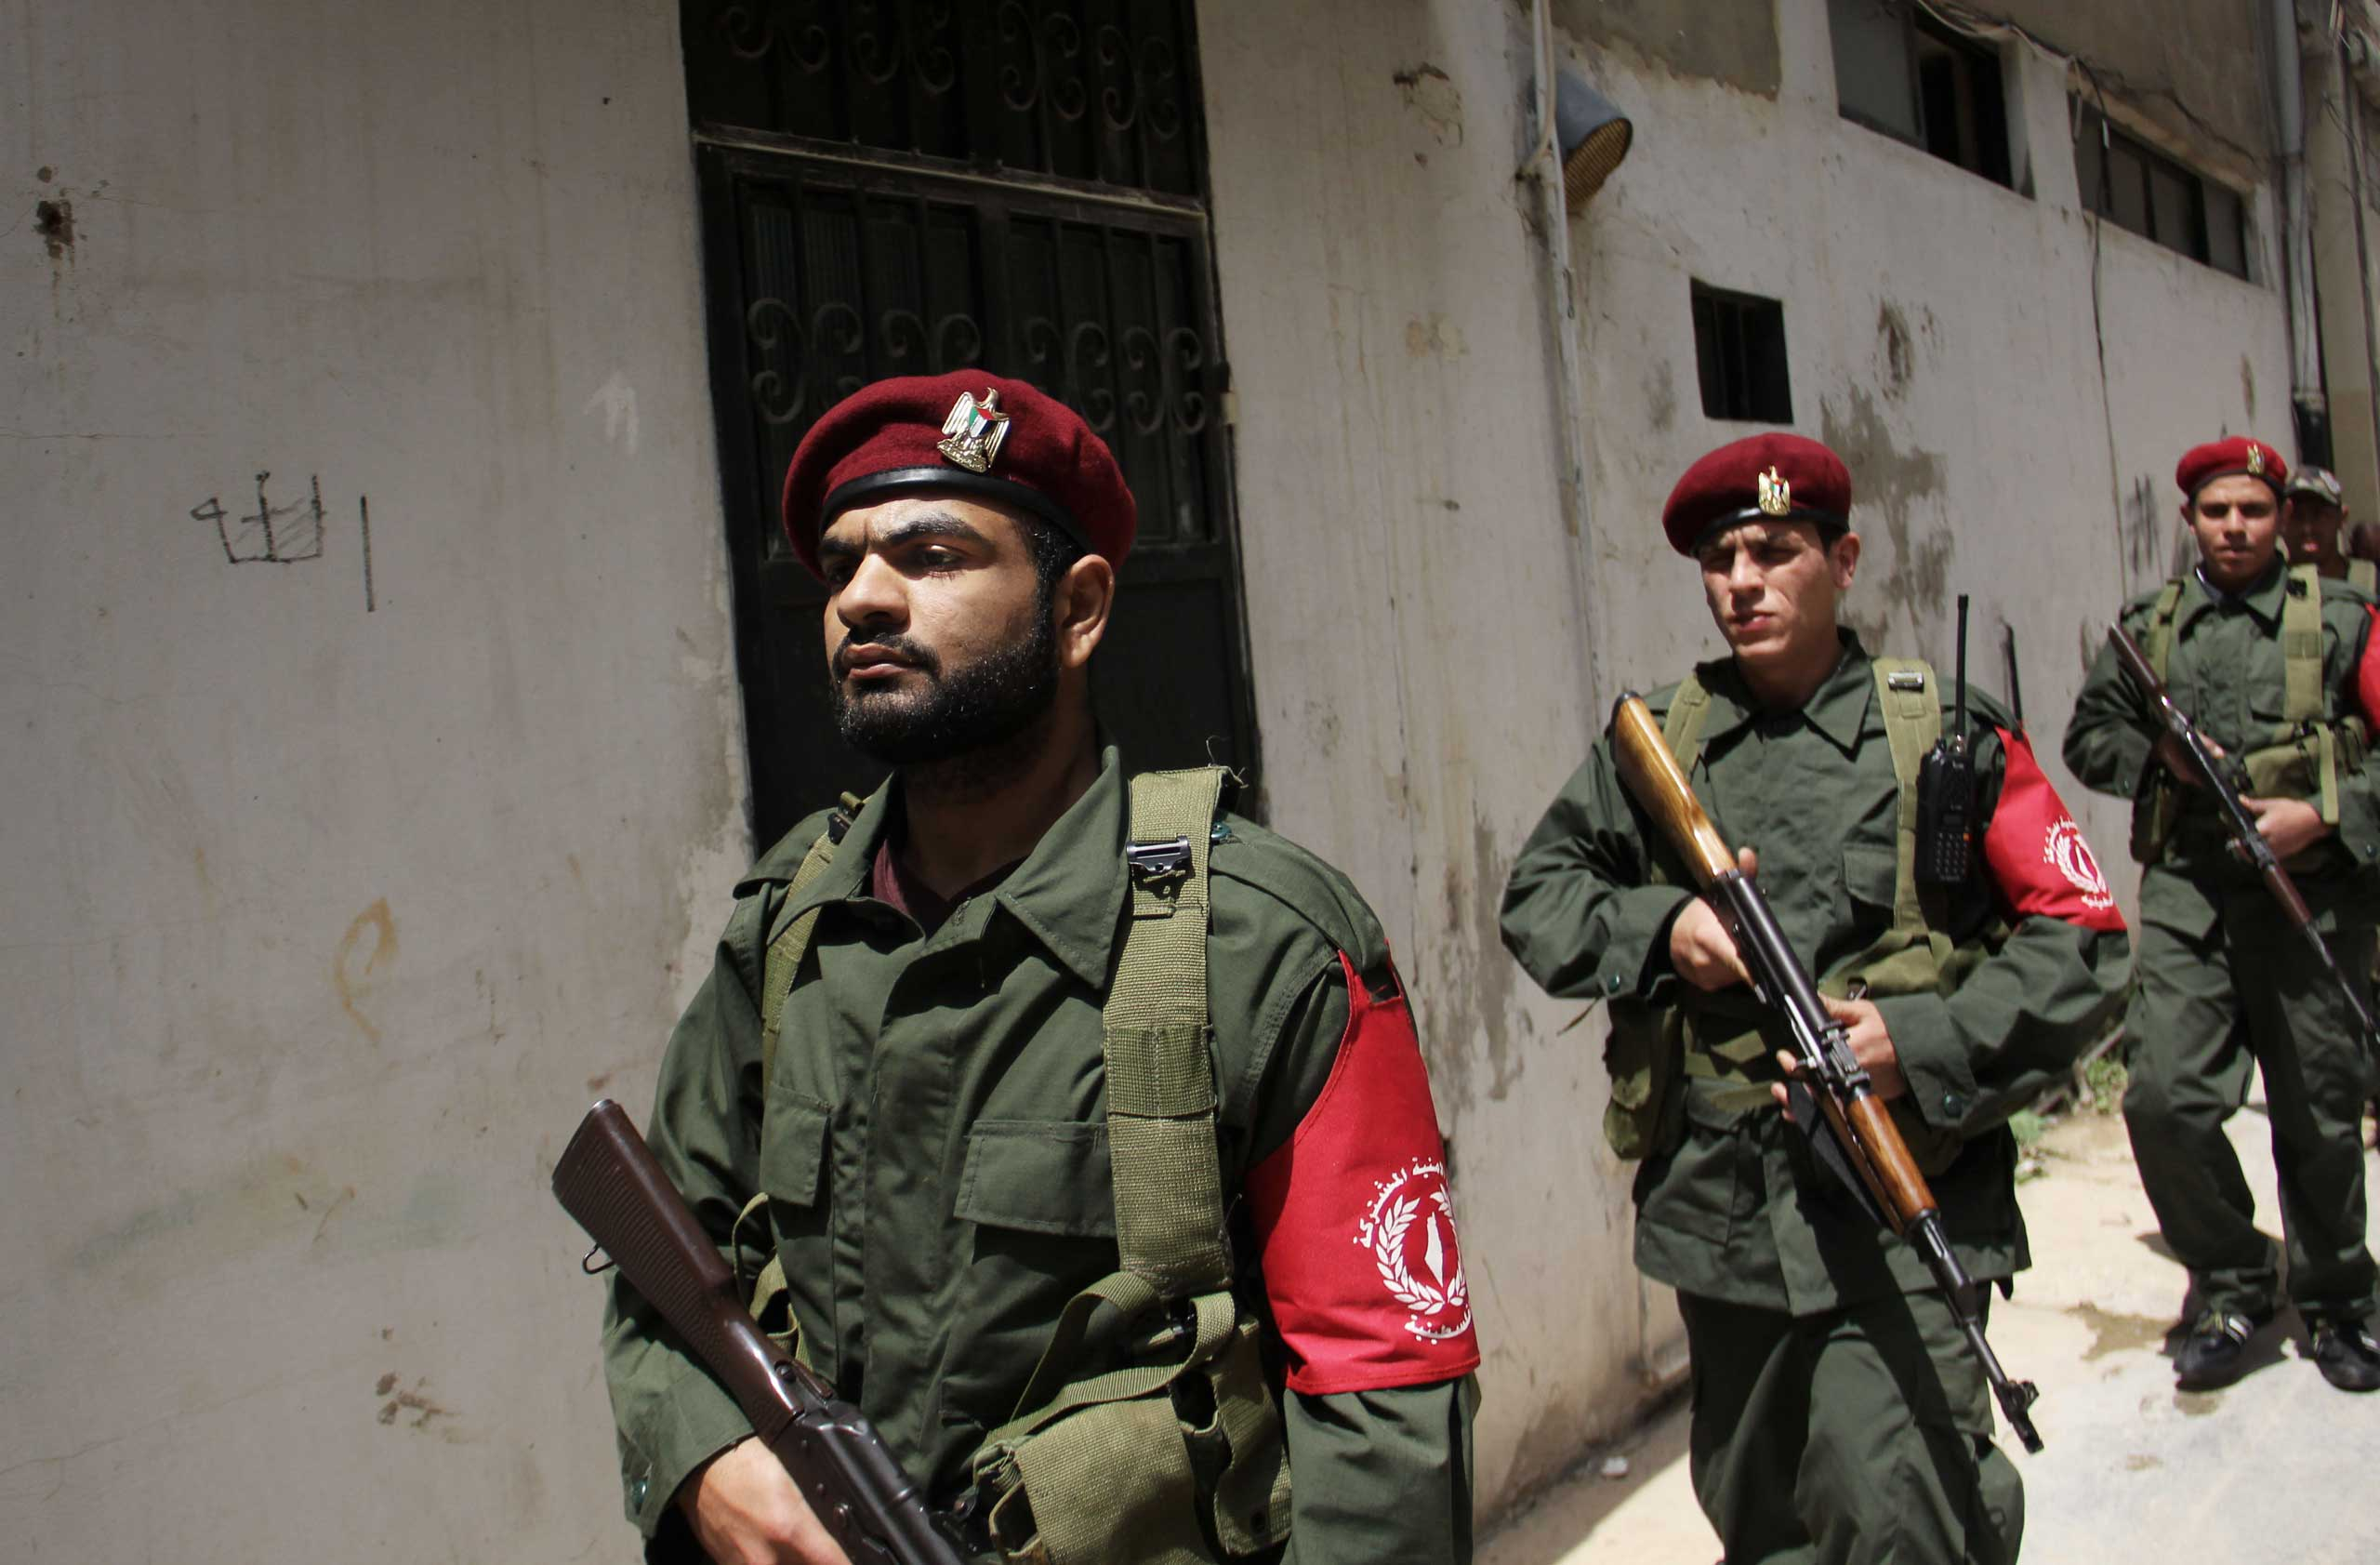 Members of a new Palestinian joint force patrol in Palestinian refugee camp Ain el-Helweh, in Lebanon on April 19, 2015.